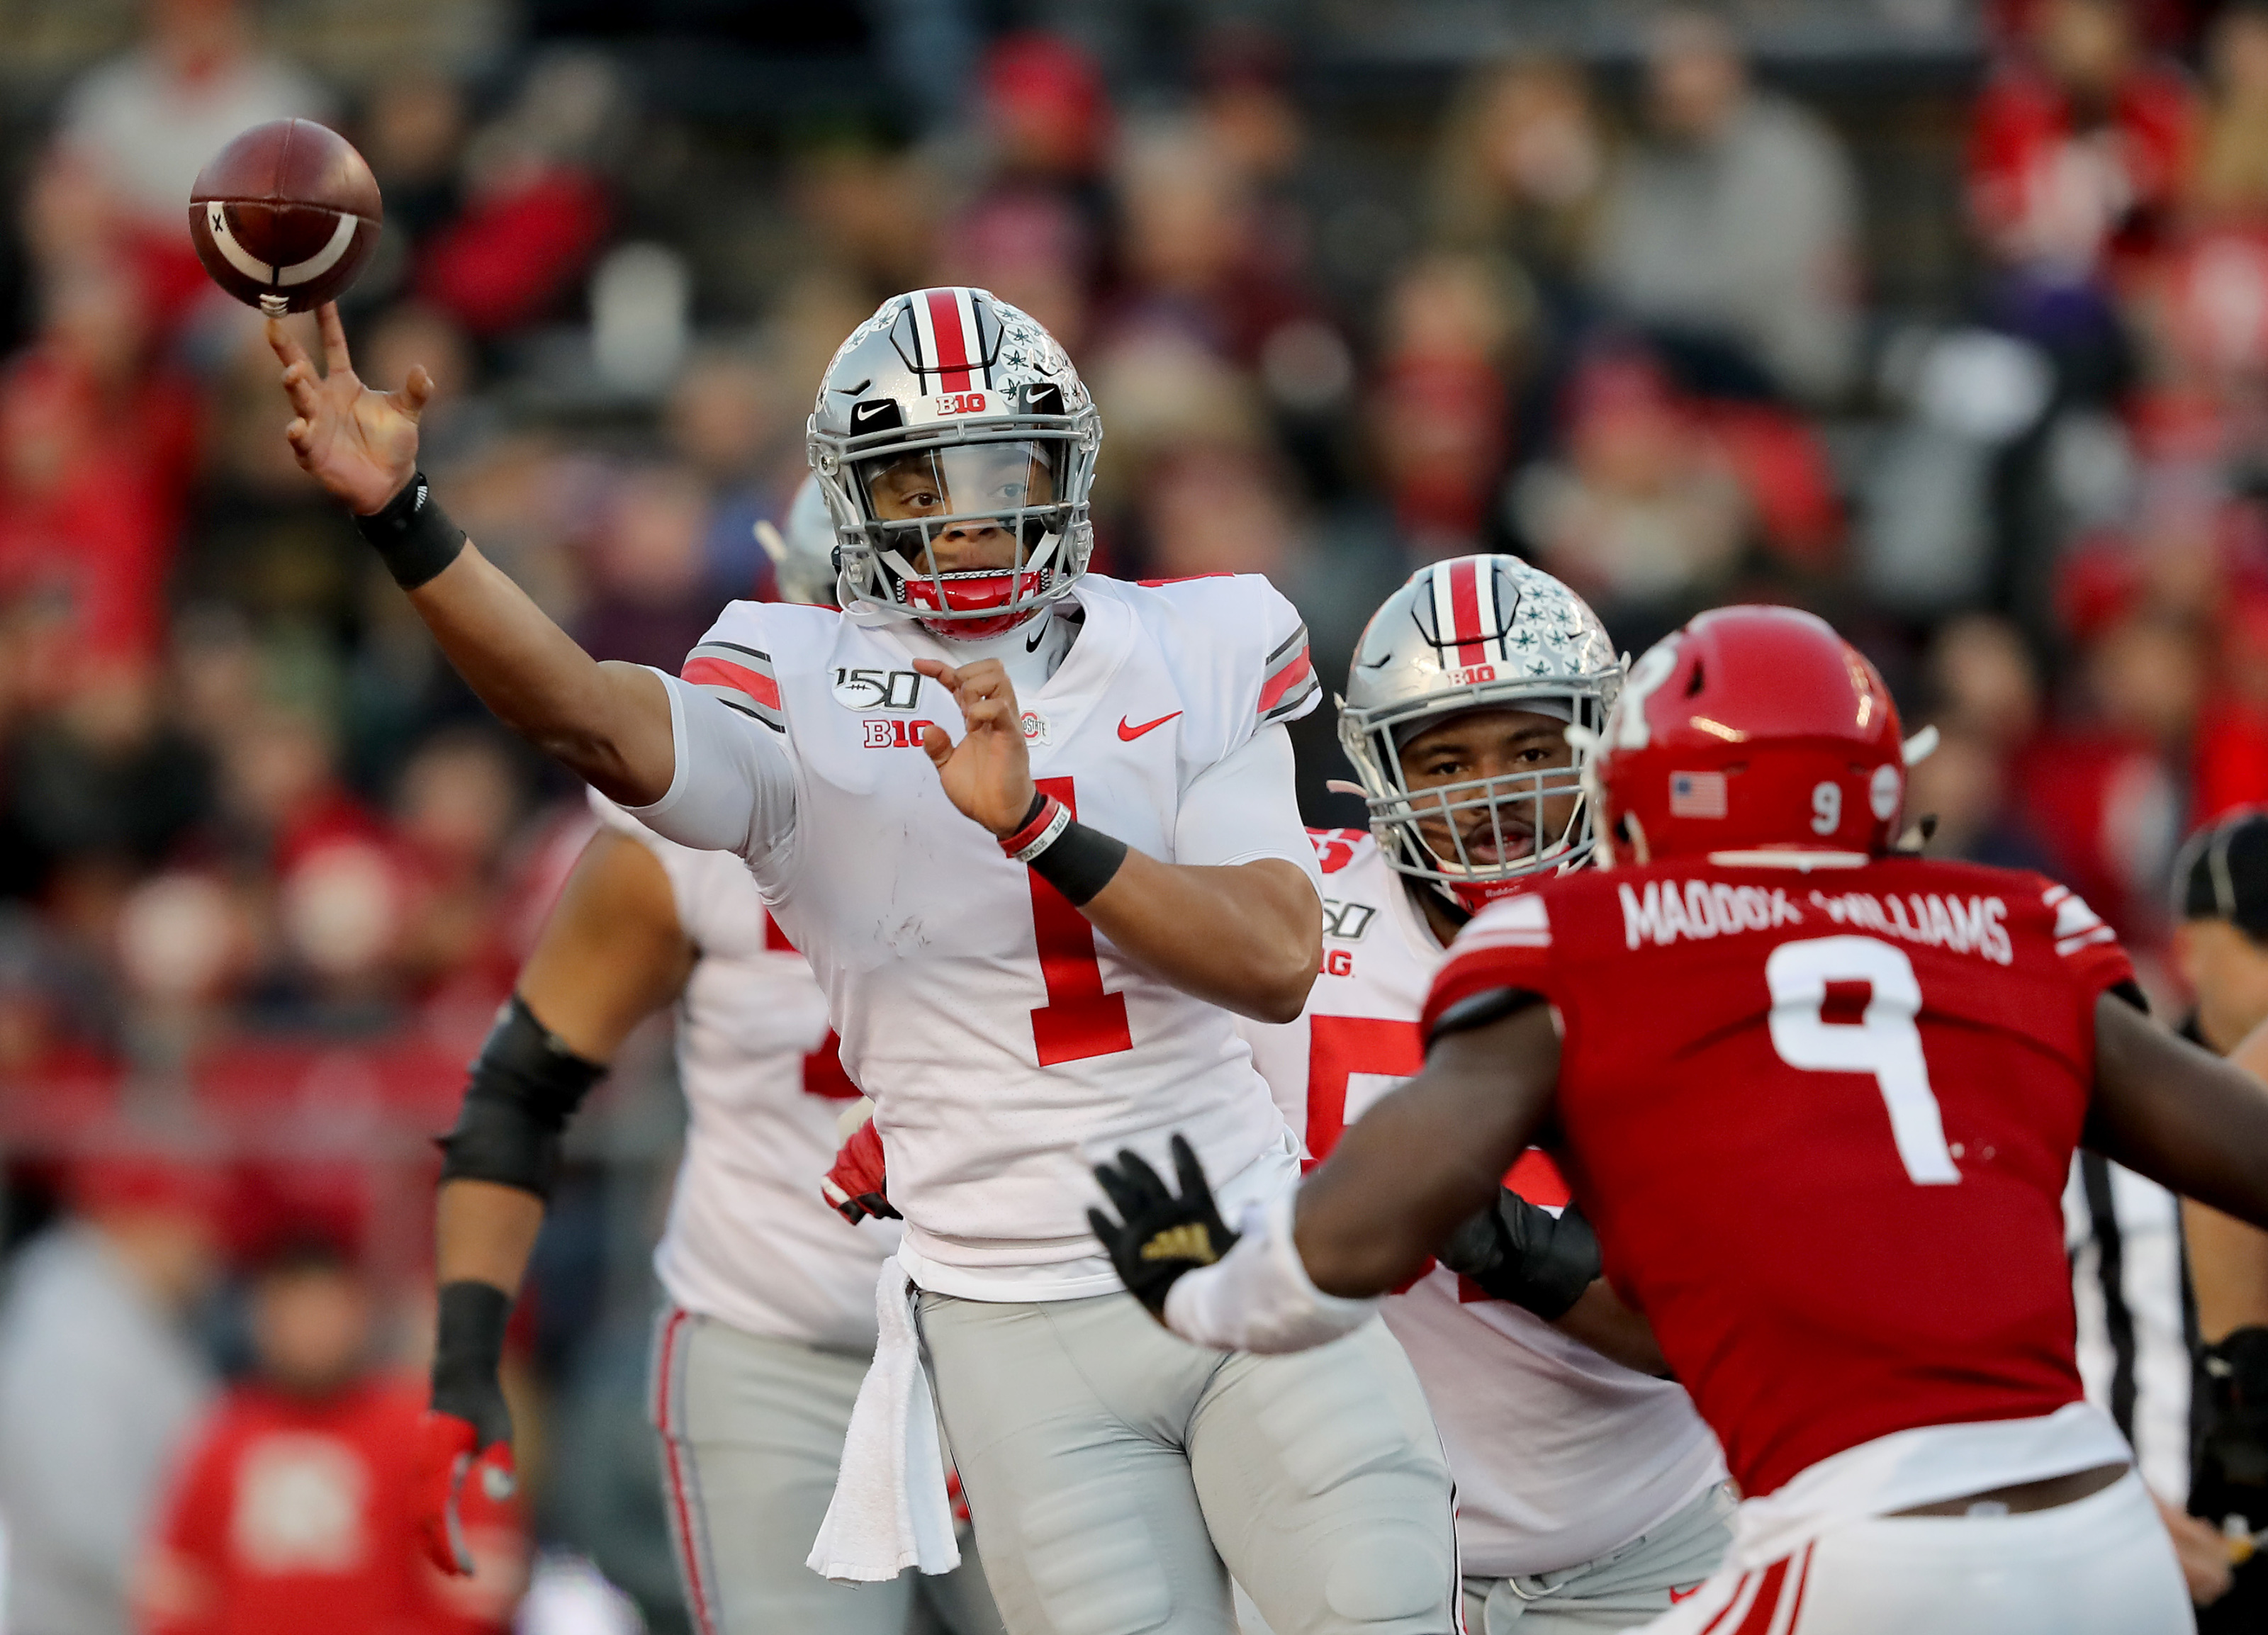 Ohio State Football: The Heisman race is down to 2